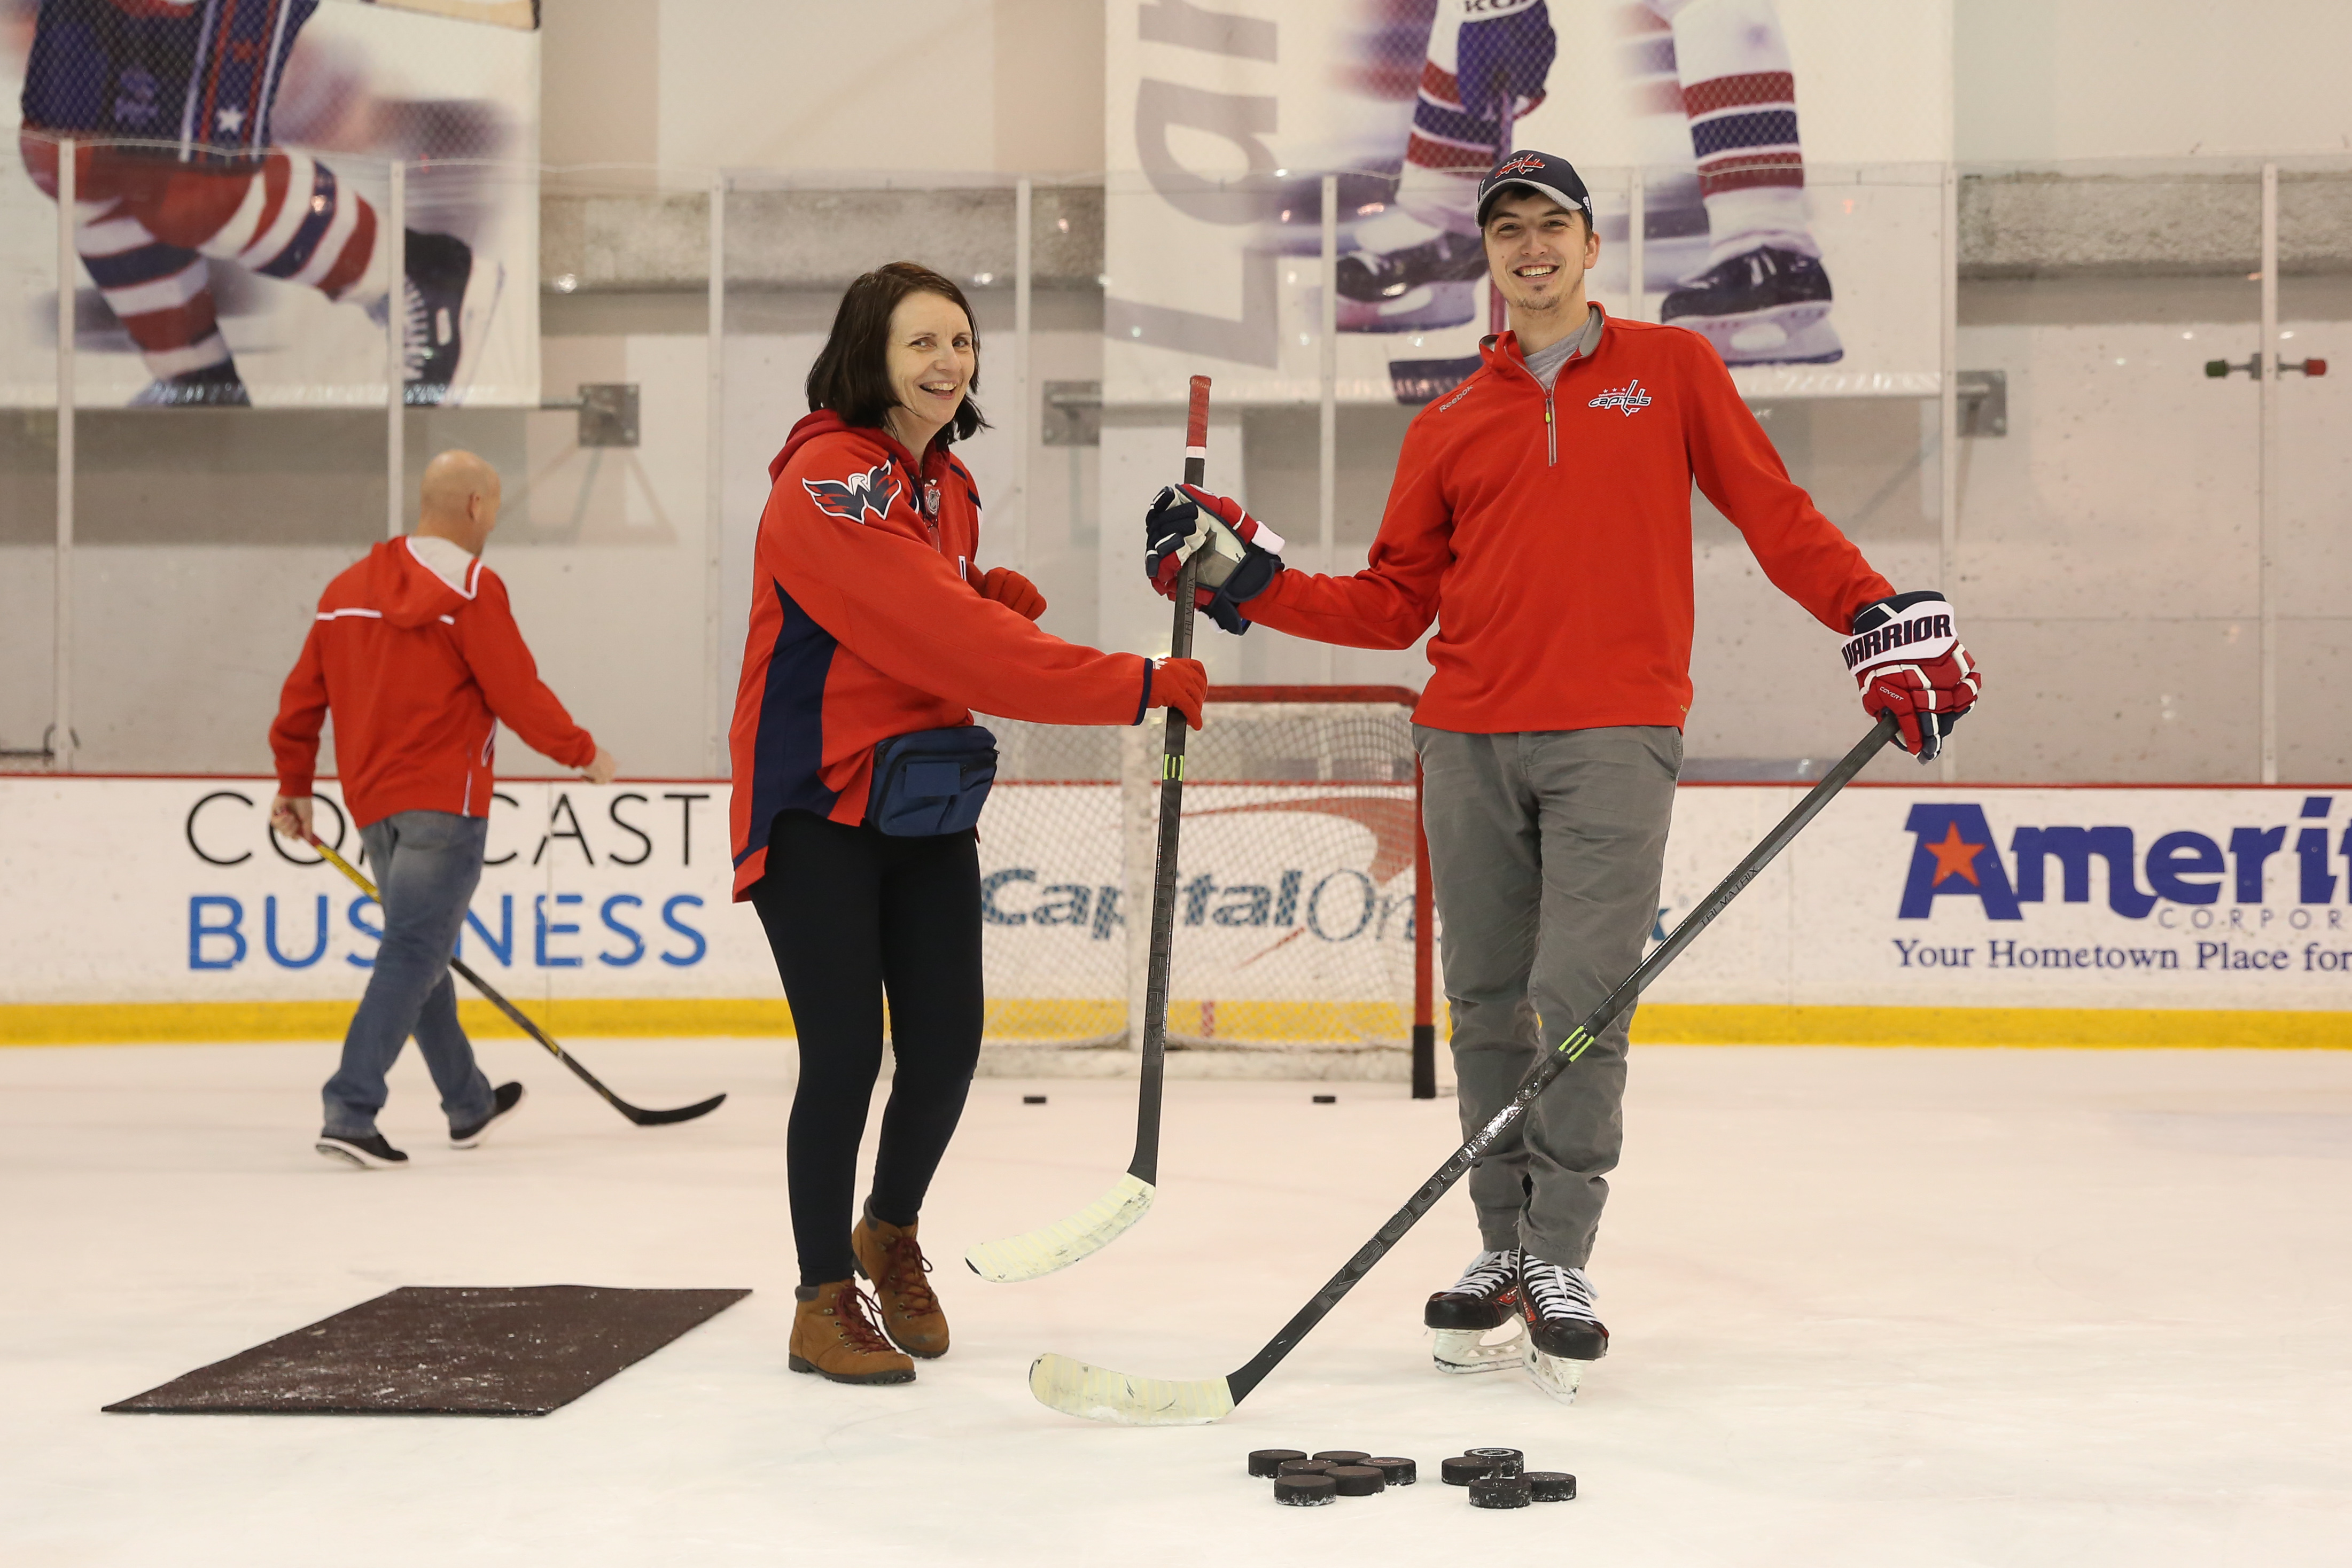 Female fans of the Caps hit the ice for the team's annual 'Hockey and Heels' night at Kettler Capitals Iceplex on January 30. The evening gives fans a chance to play a little broomball, hit pucks and snap selfies with some of their favorite players. Hockey and Heels is run by the Scarlet Caps, the team's women-only fan group. (Amanda Andrade-Rhoades/DC Refined)